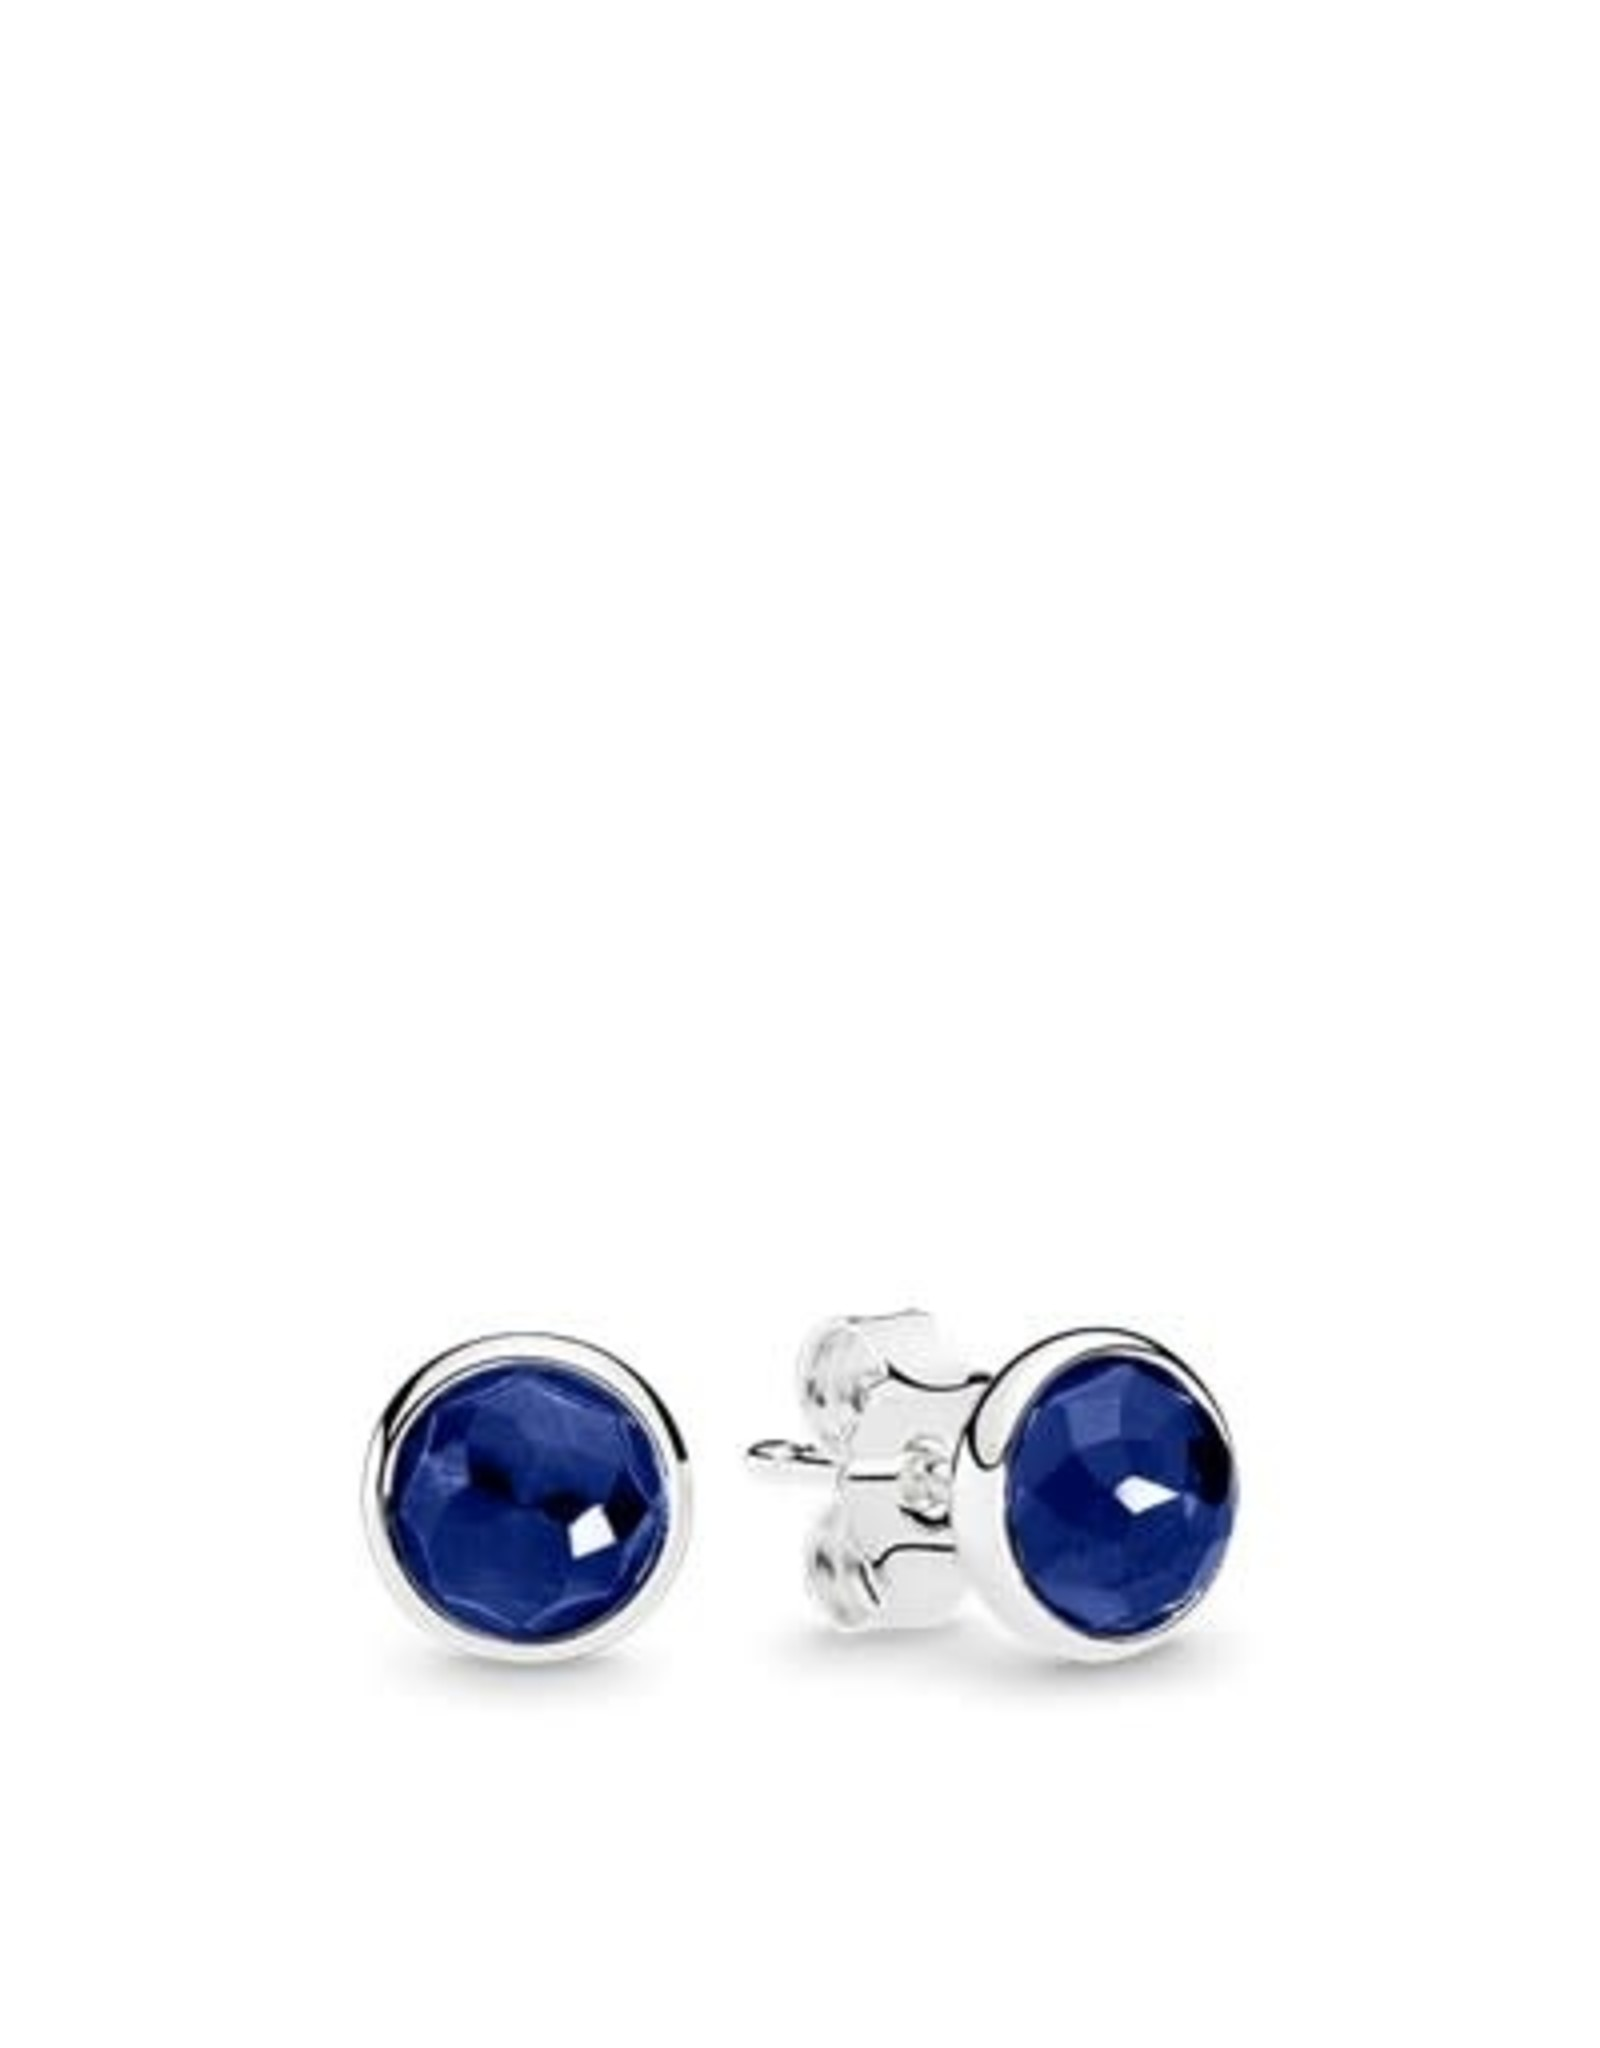 Pandora Pandora Earring Studs September Droplets With Synthetic Sapphire